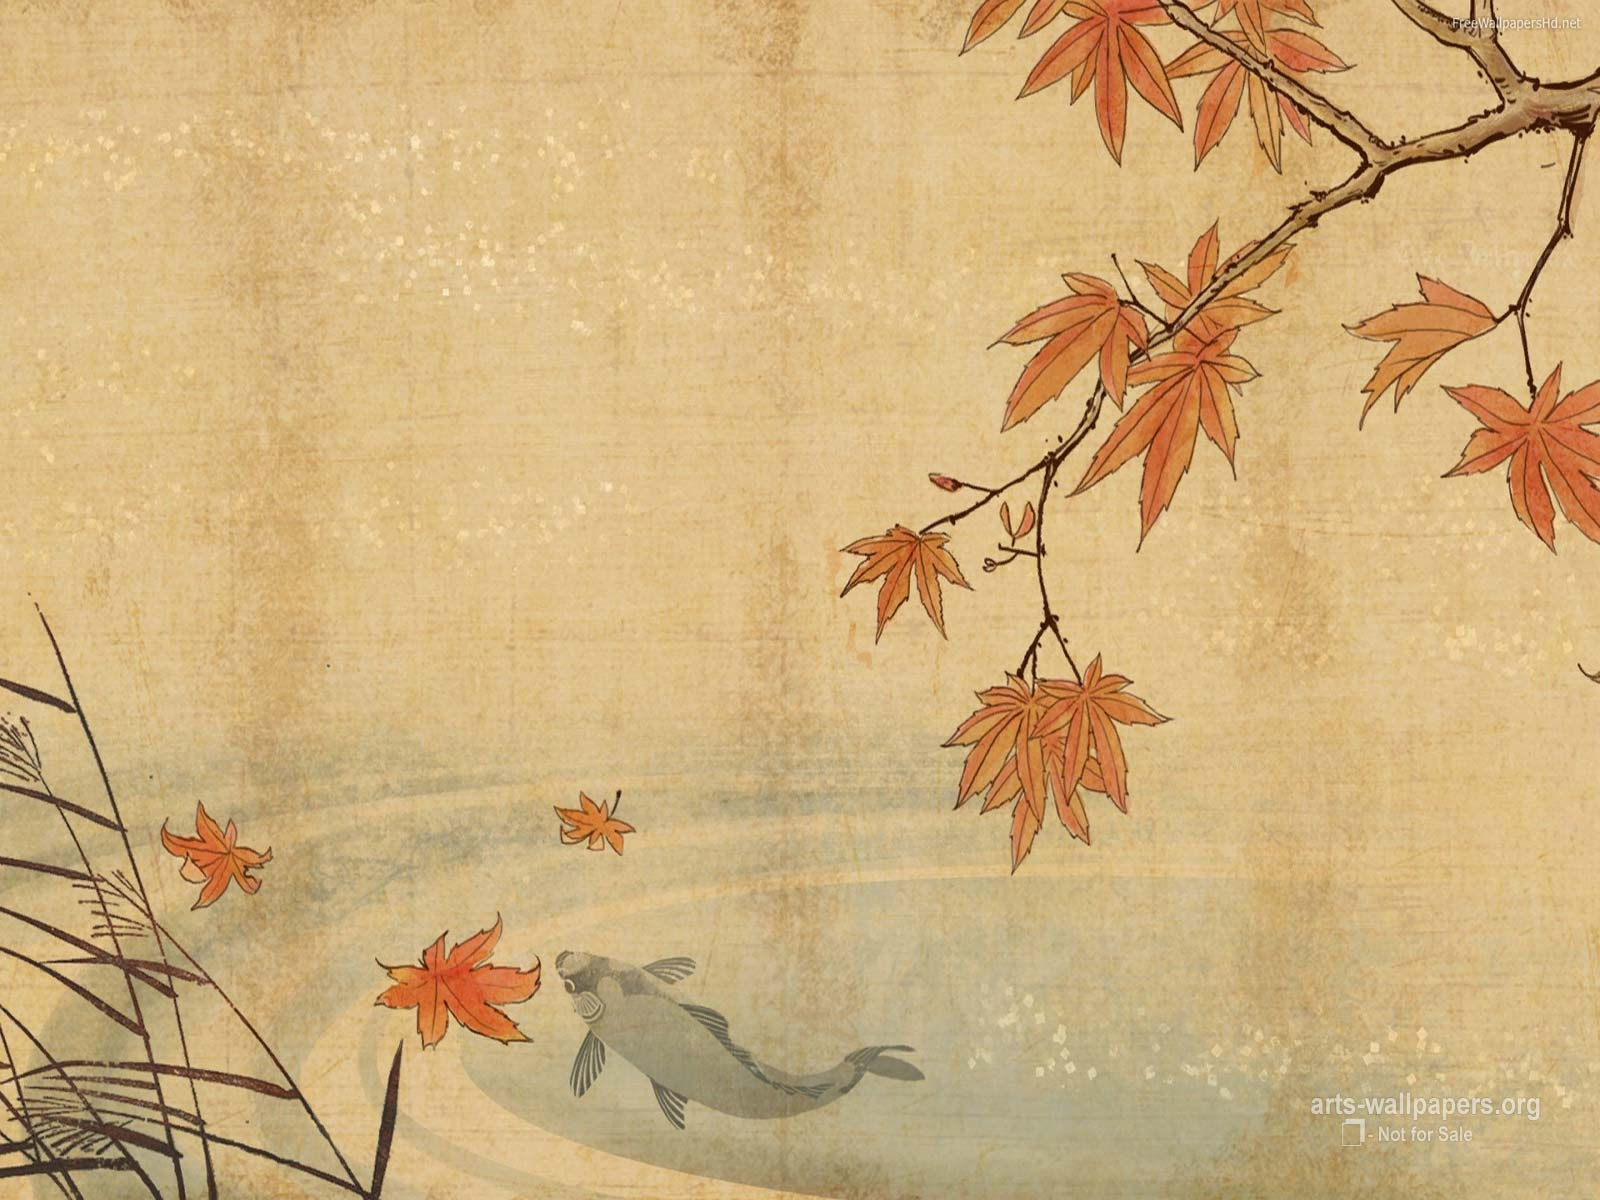 Chinese Painting Art Wallpapers Paintings Desktop Art Backgrounds 1600x1200